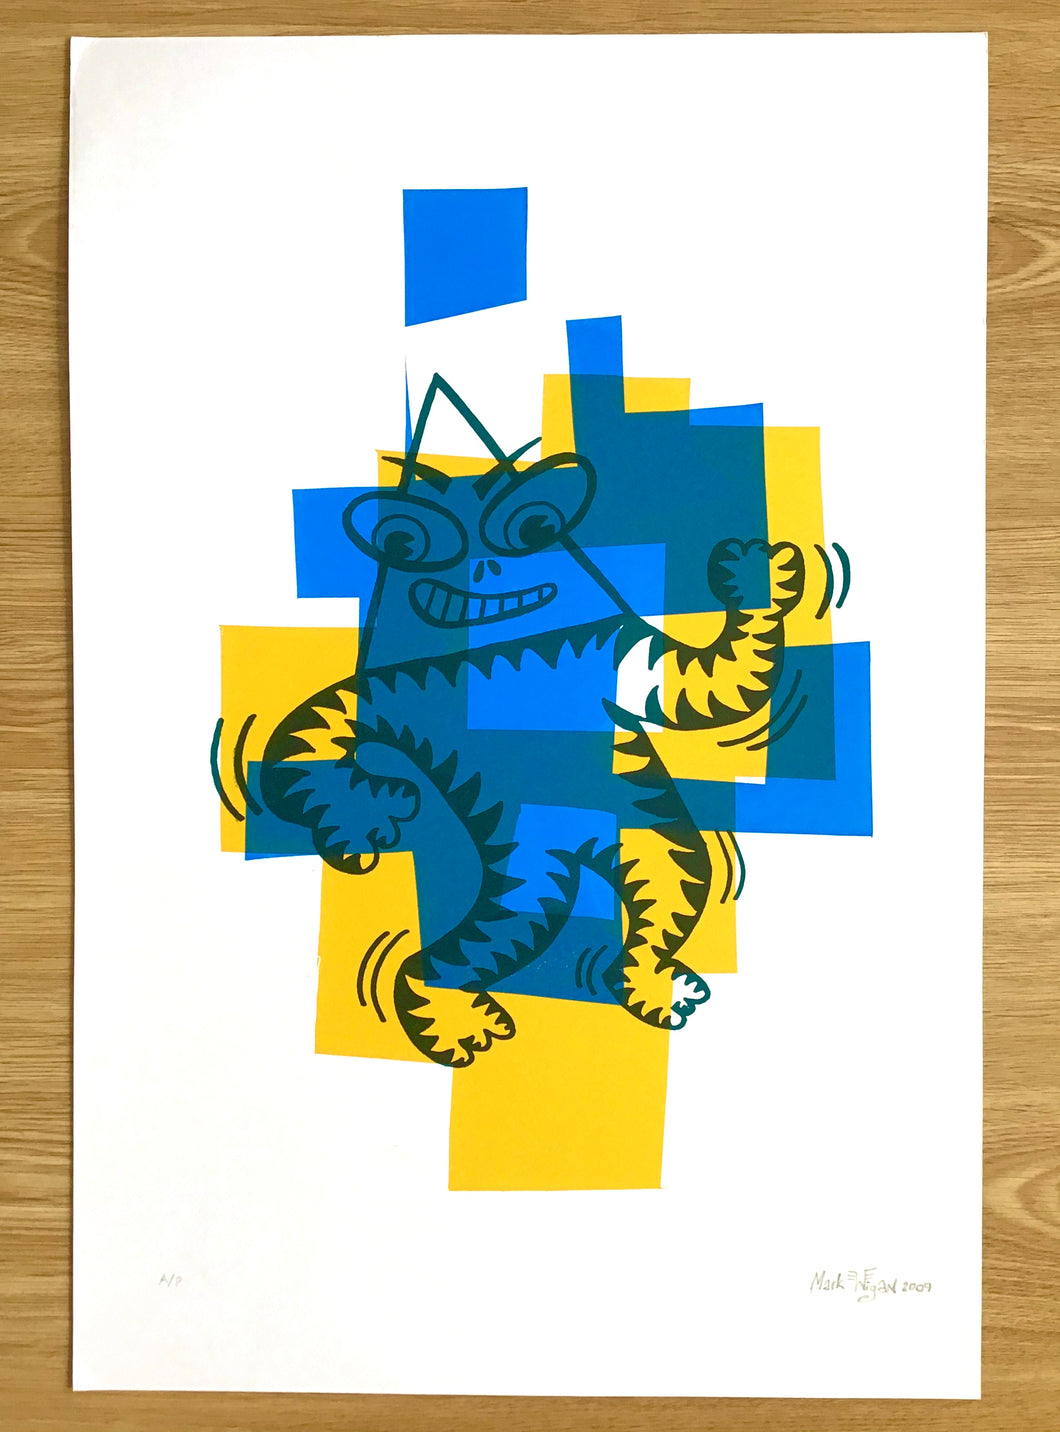 Mr Funk artist proof screenprint 2009